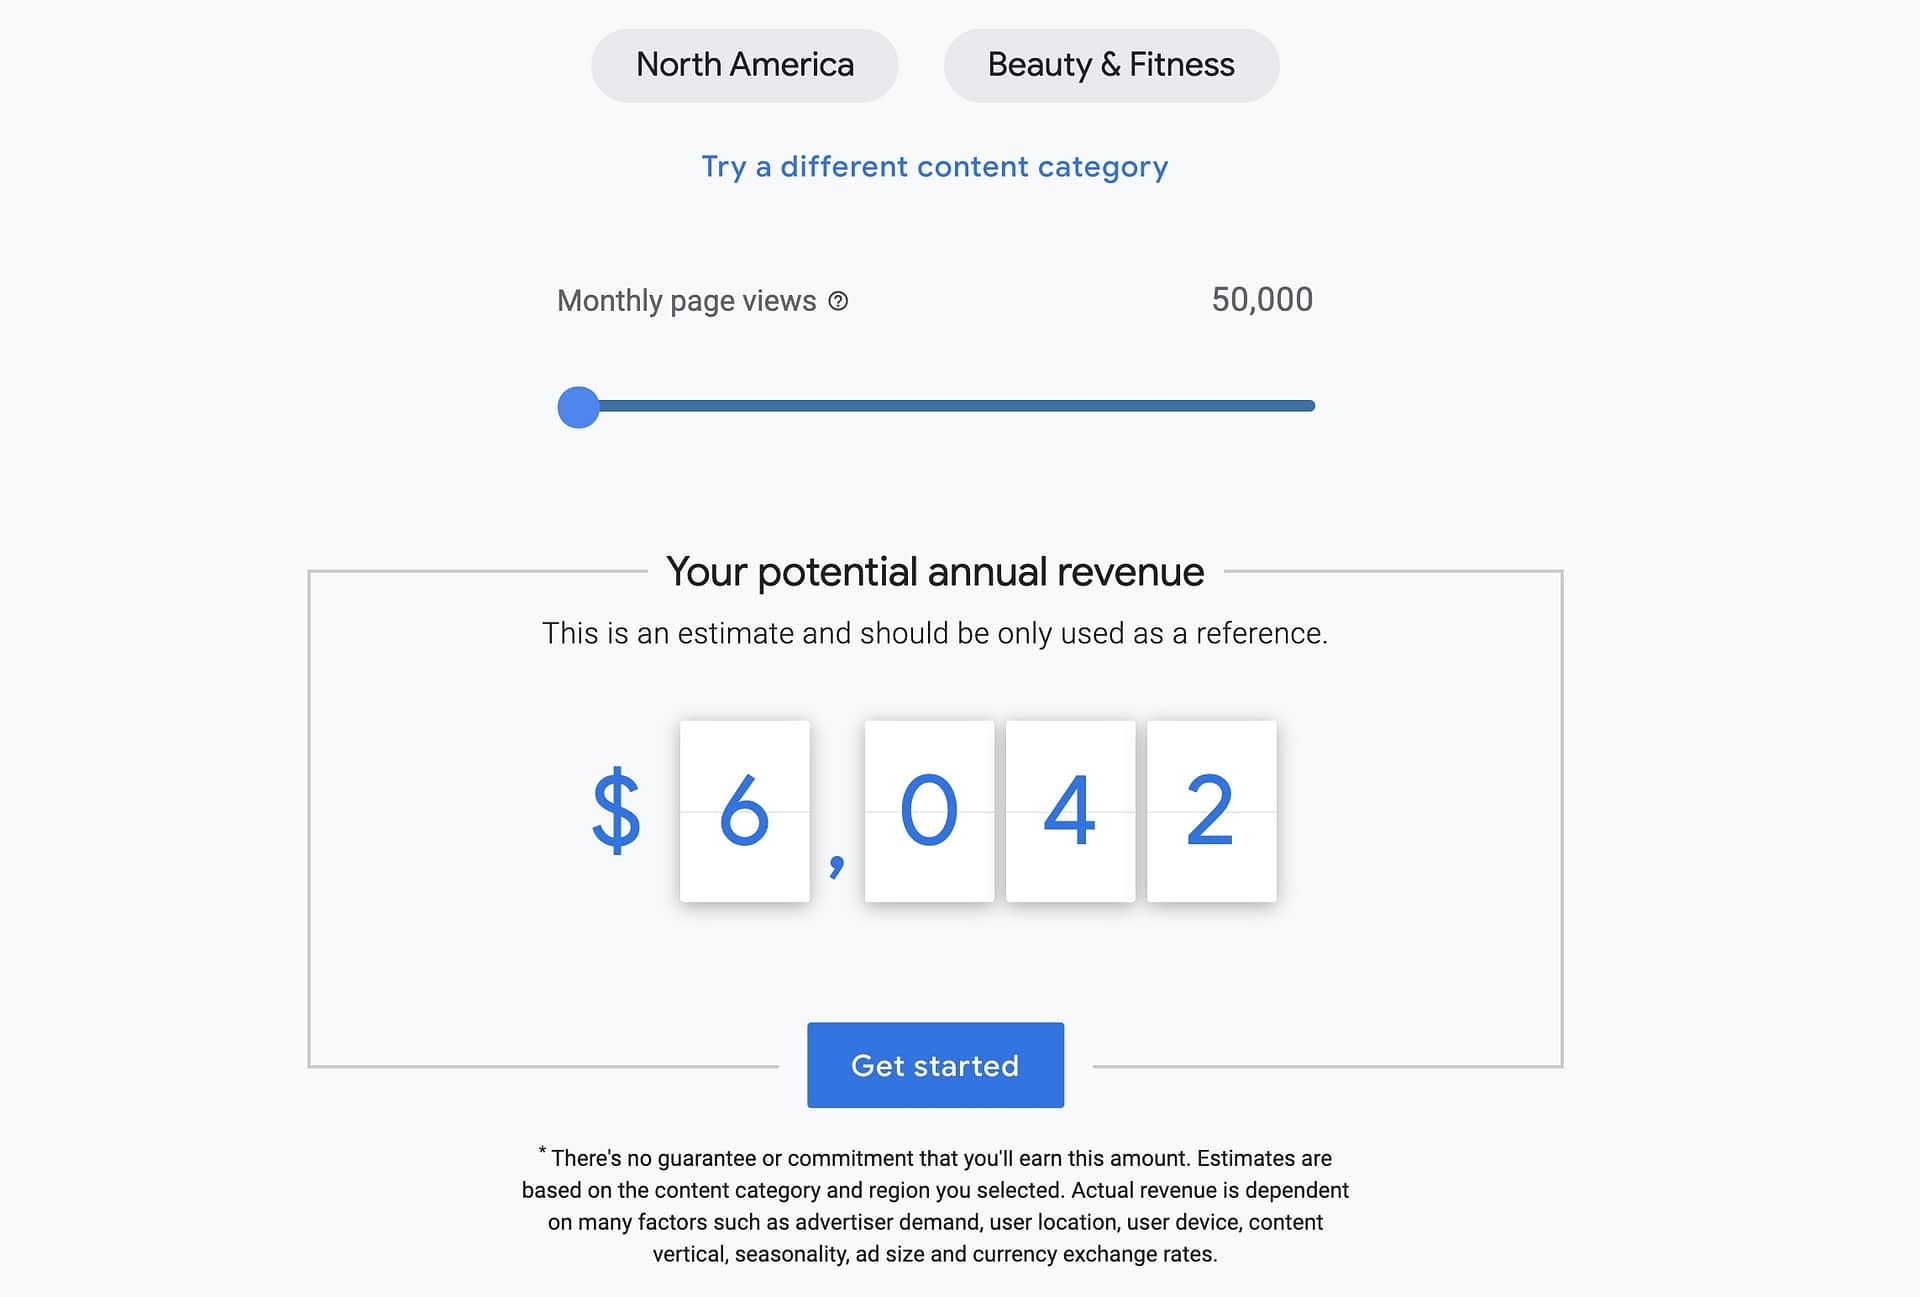 For the sake of this blog, I looked up how much a website in the beauty and fitness niche would make if they had 50,000-page visits per month.